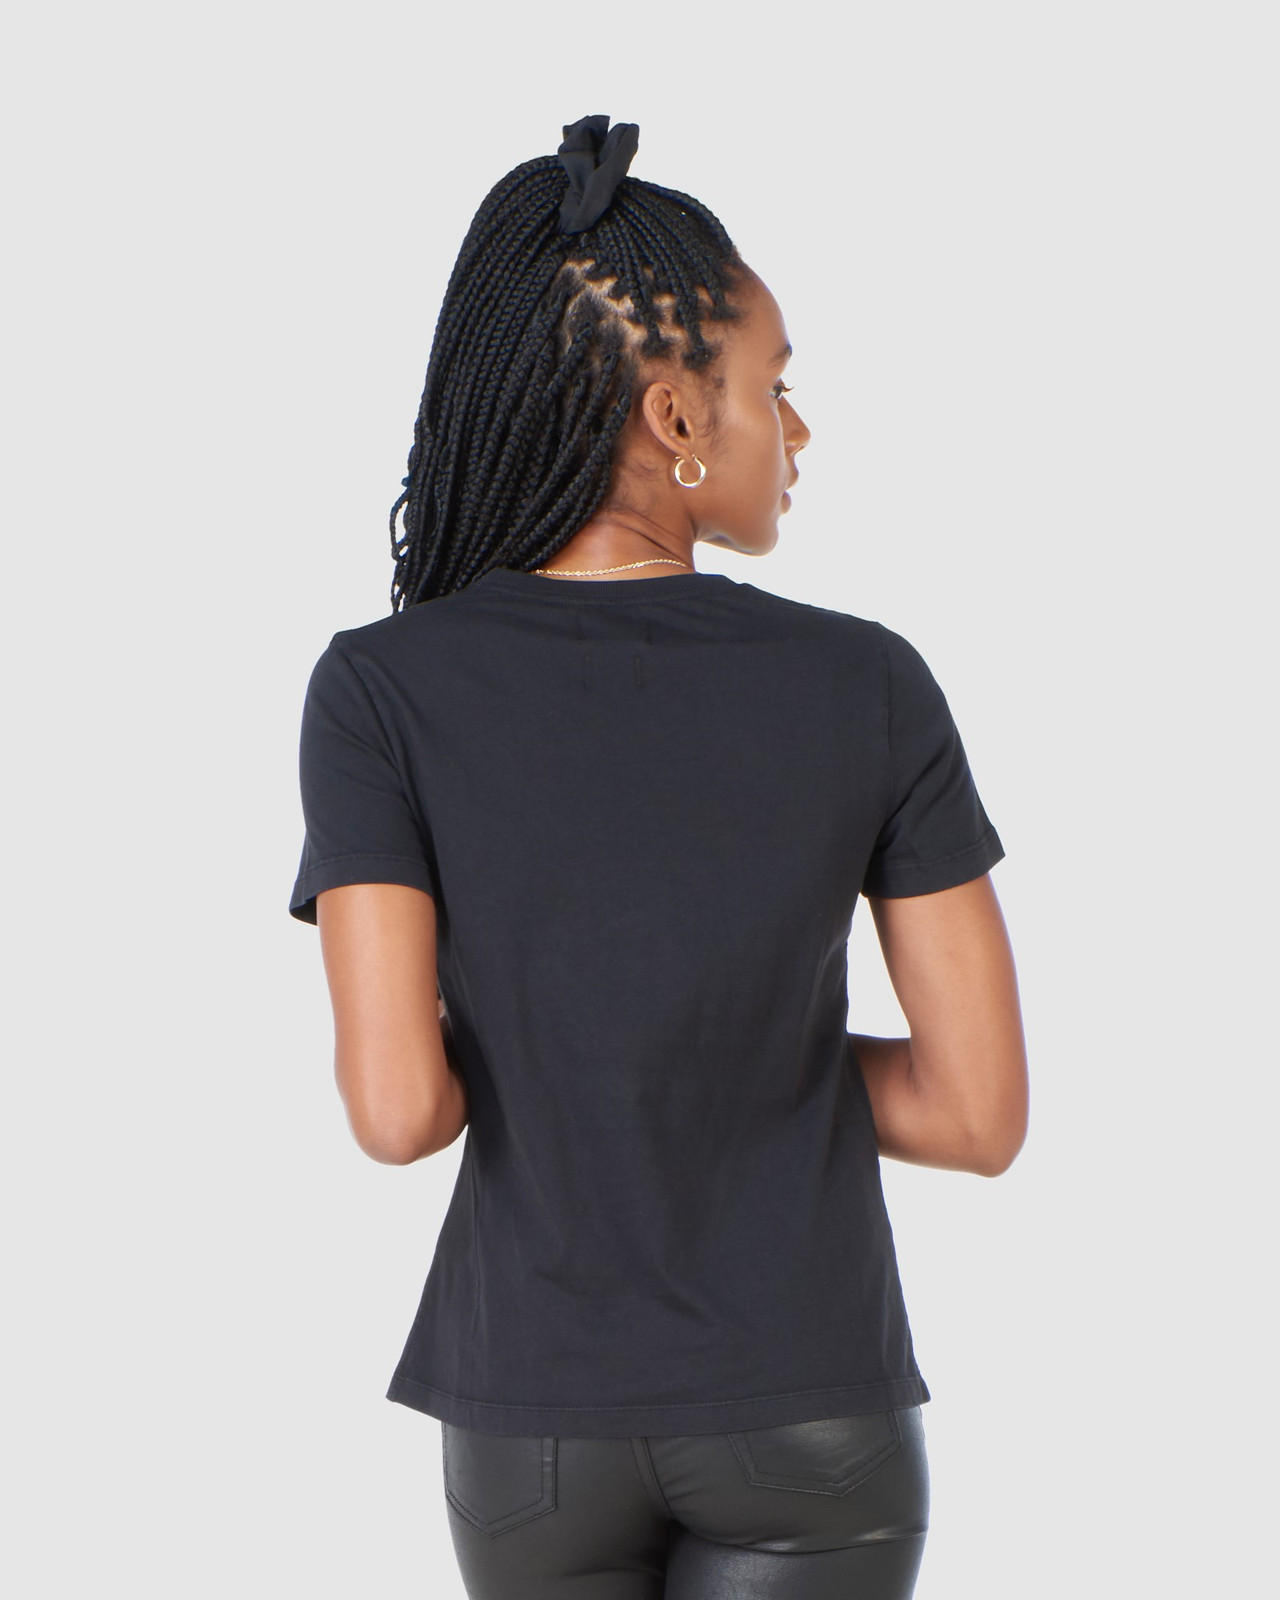 Superdry Womens COPPER LABEL TEE Black Printed T Shirts 3